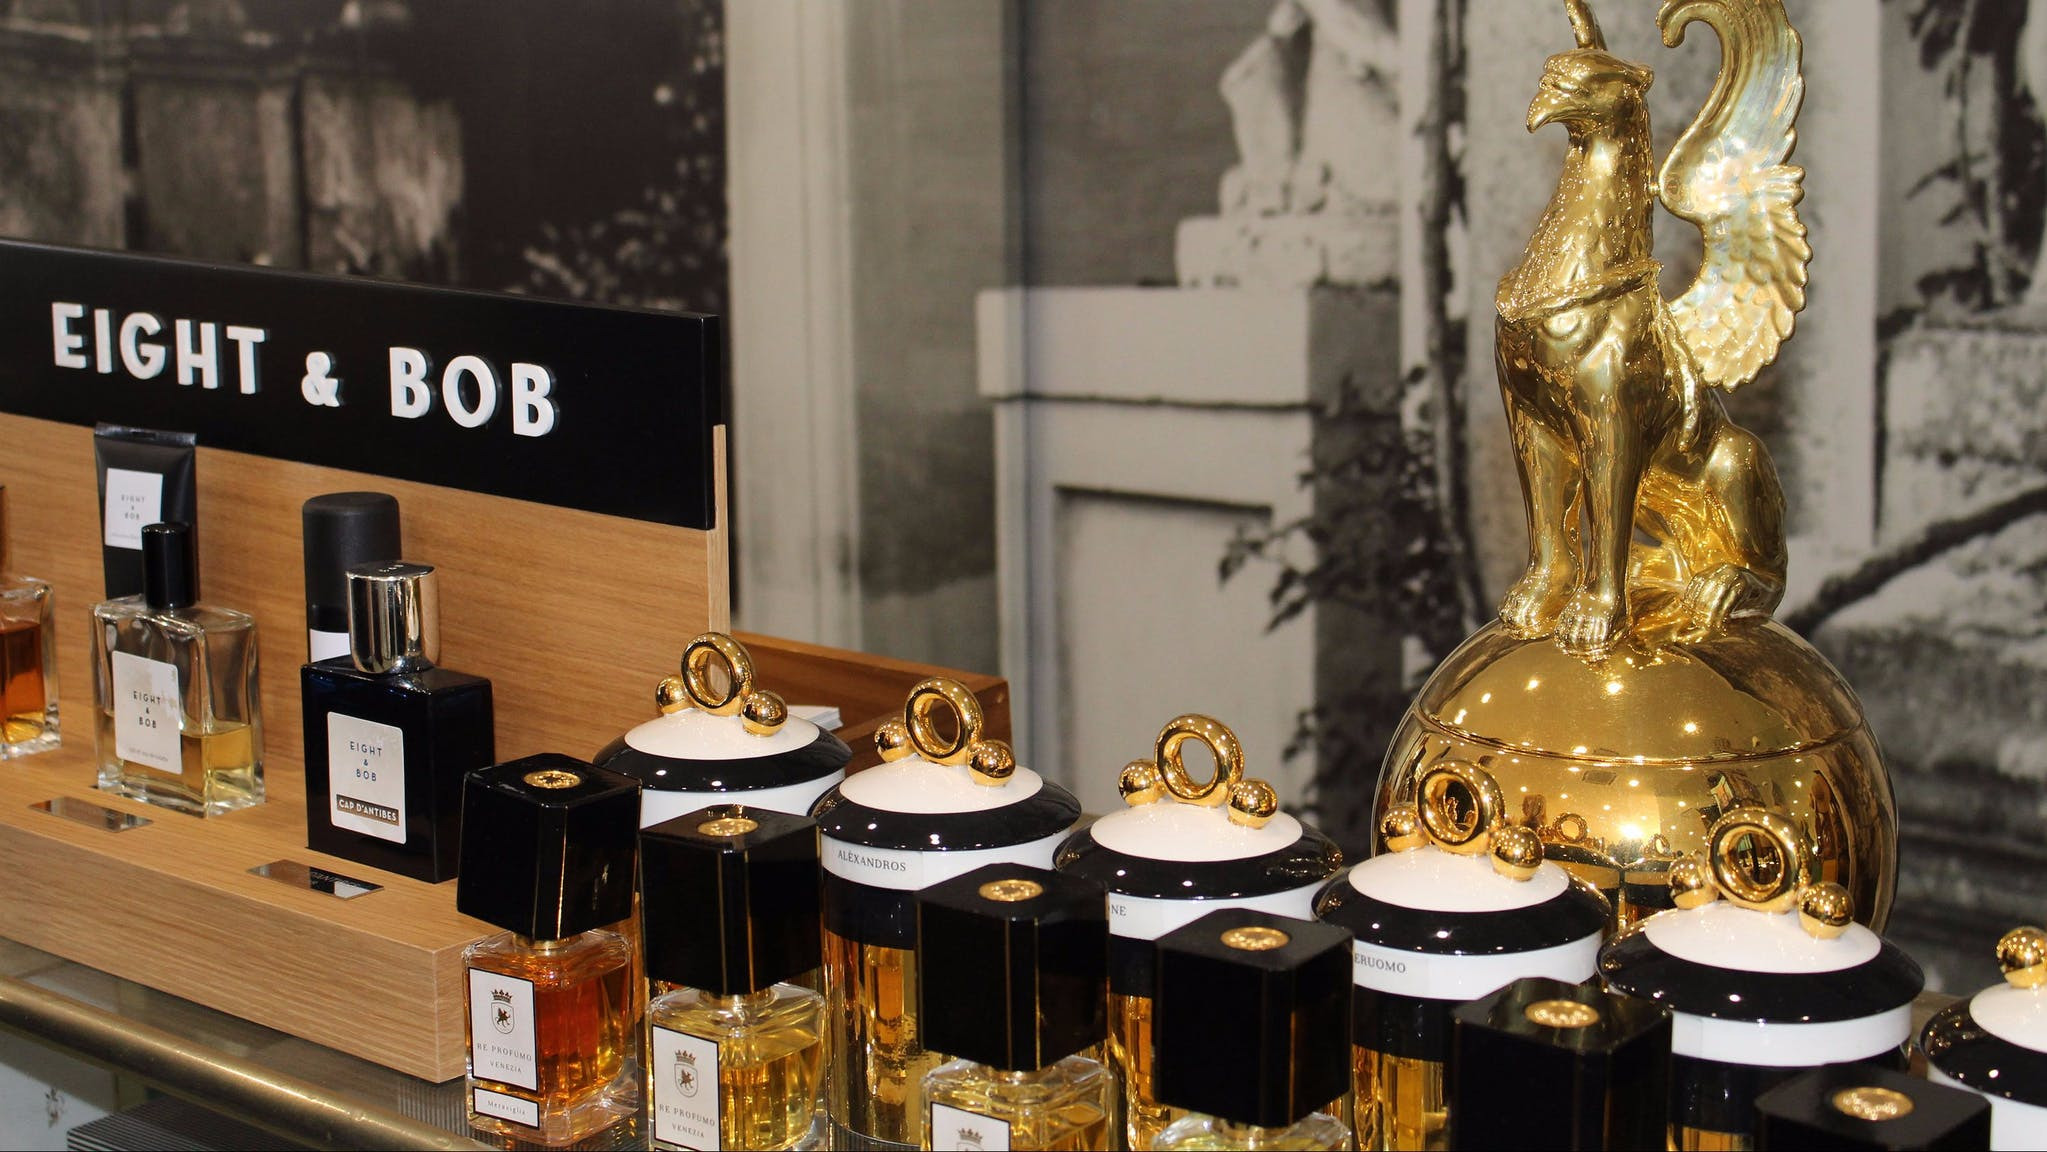 Niche perfumes from around the world